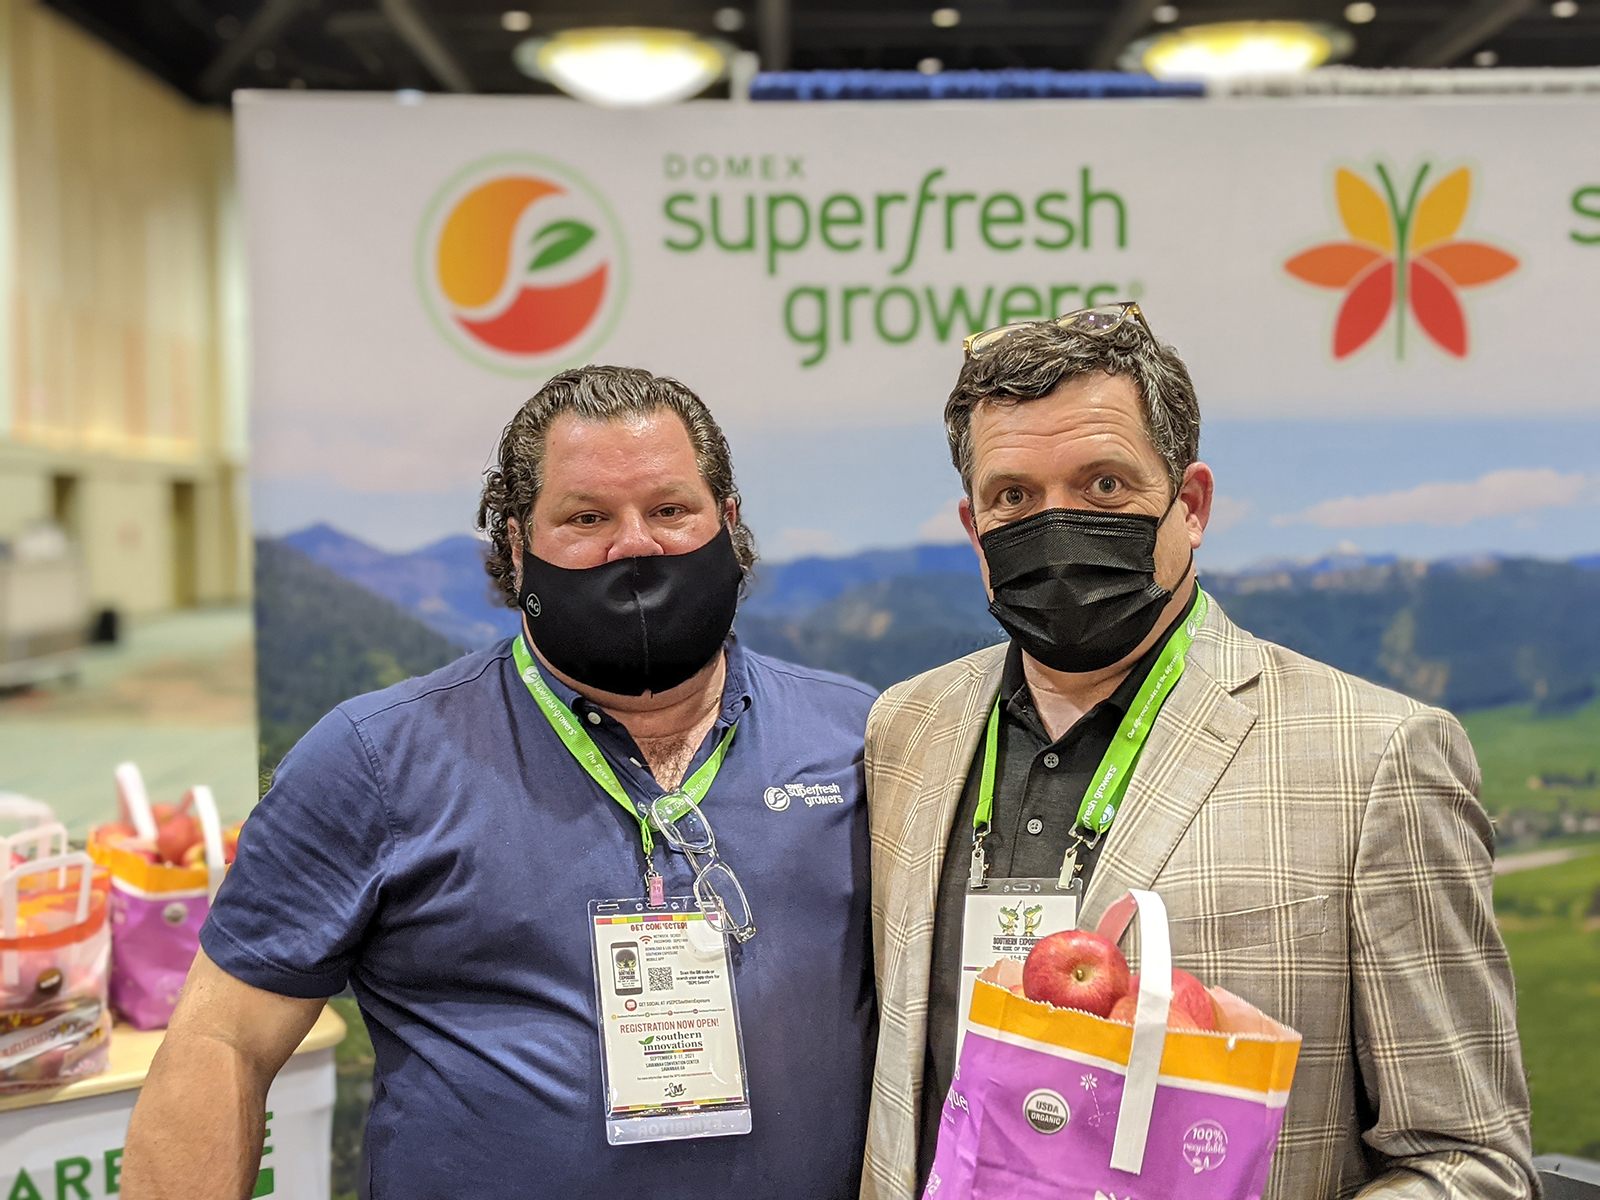 Paul Newstead and Mike Preacher of Superfresh Growers.